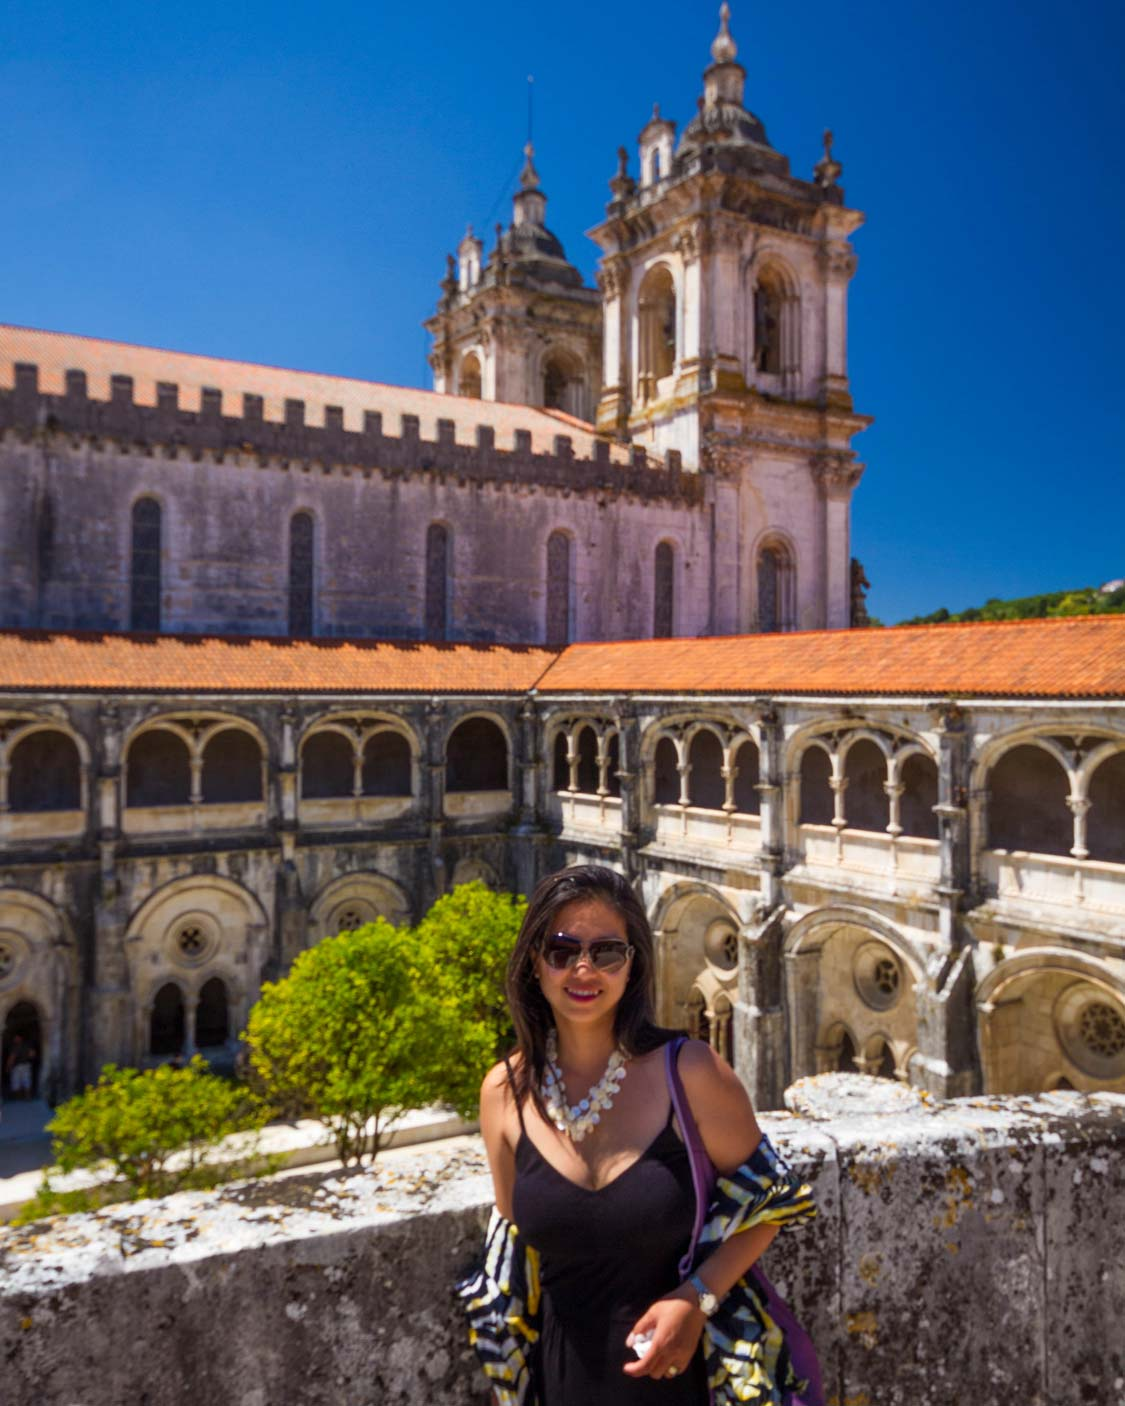 Alcobaca Monastery Cloister of Silence in Alcobaca Portugal